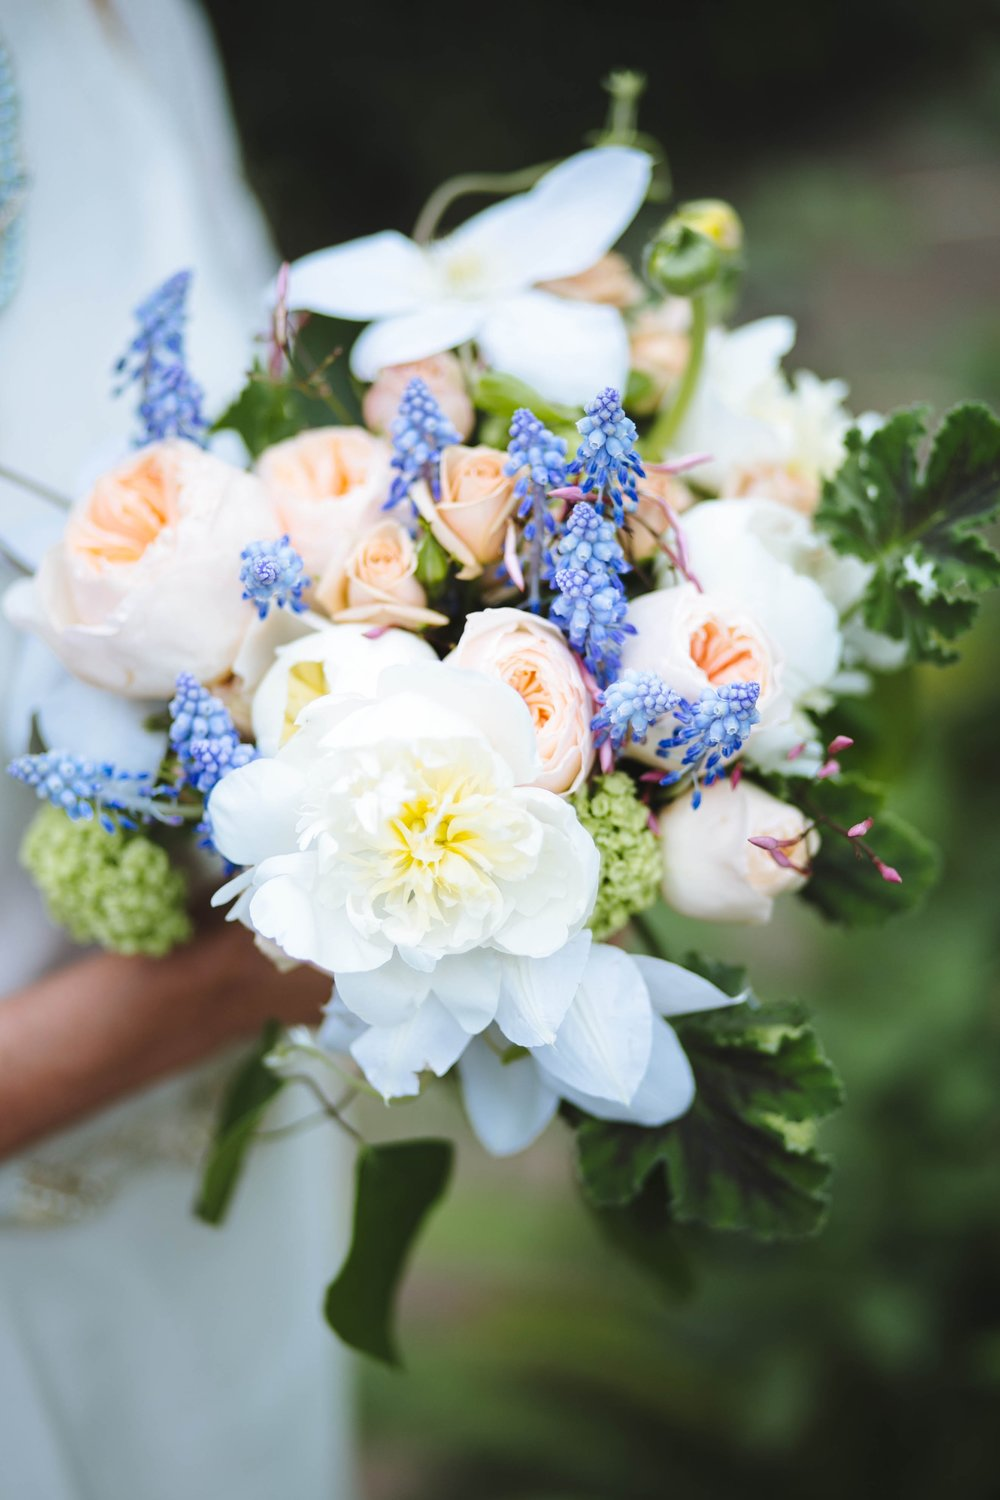 Wedding bouquet designed by Fleur Inc with muscari, clematis & peonies.  Photographed by Jaclyn Simpson Photography.